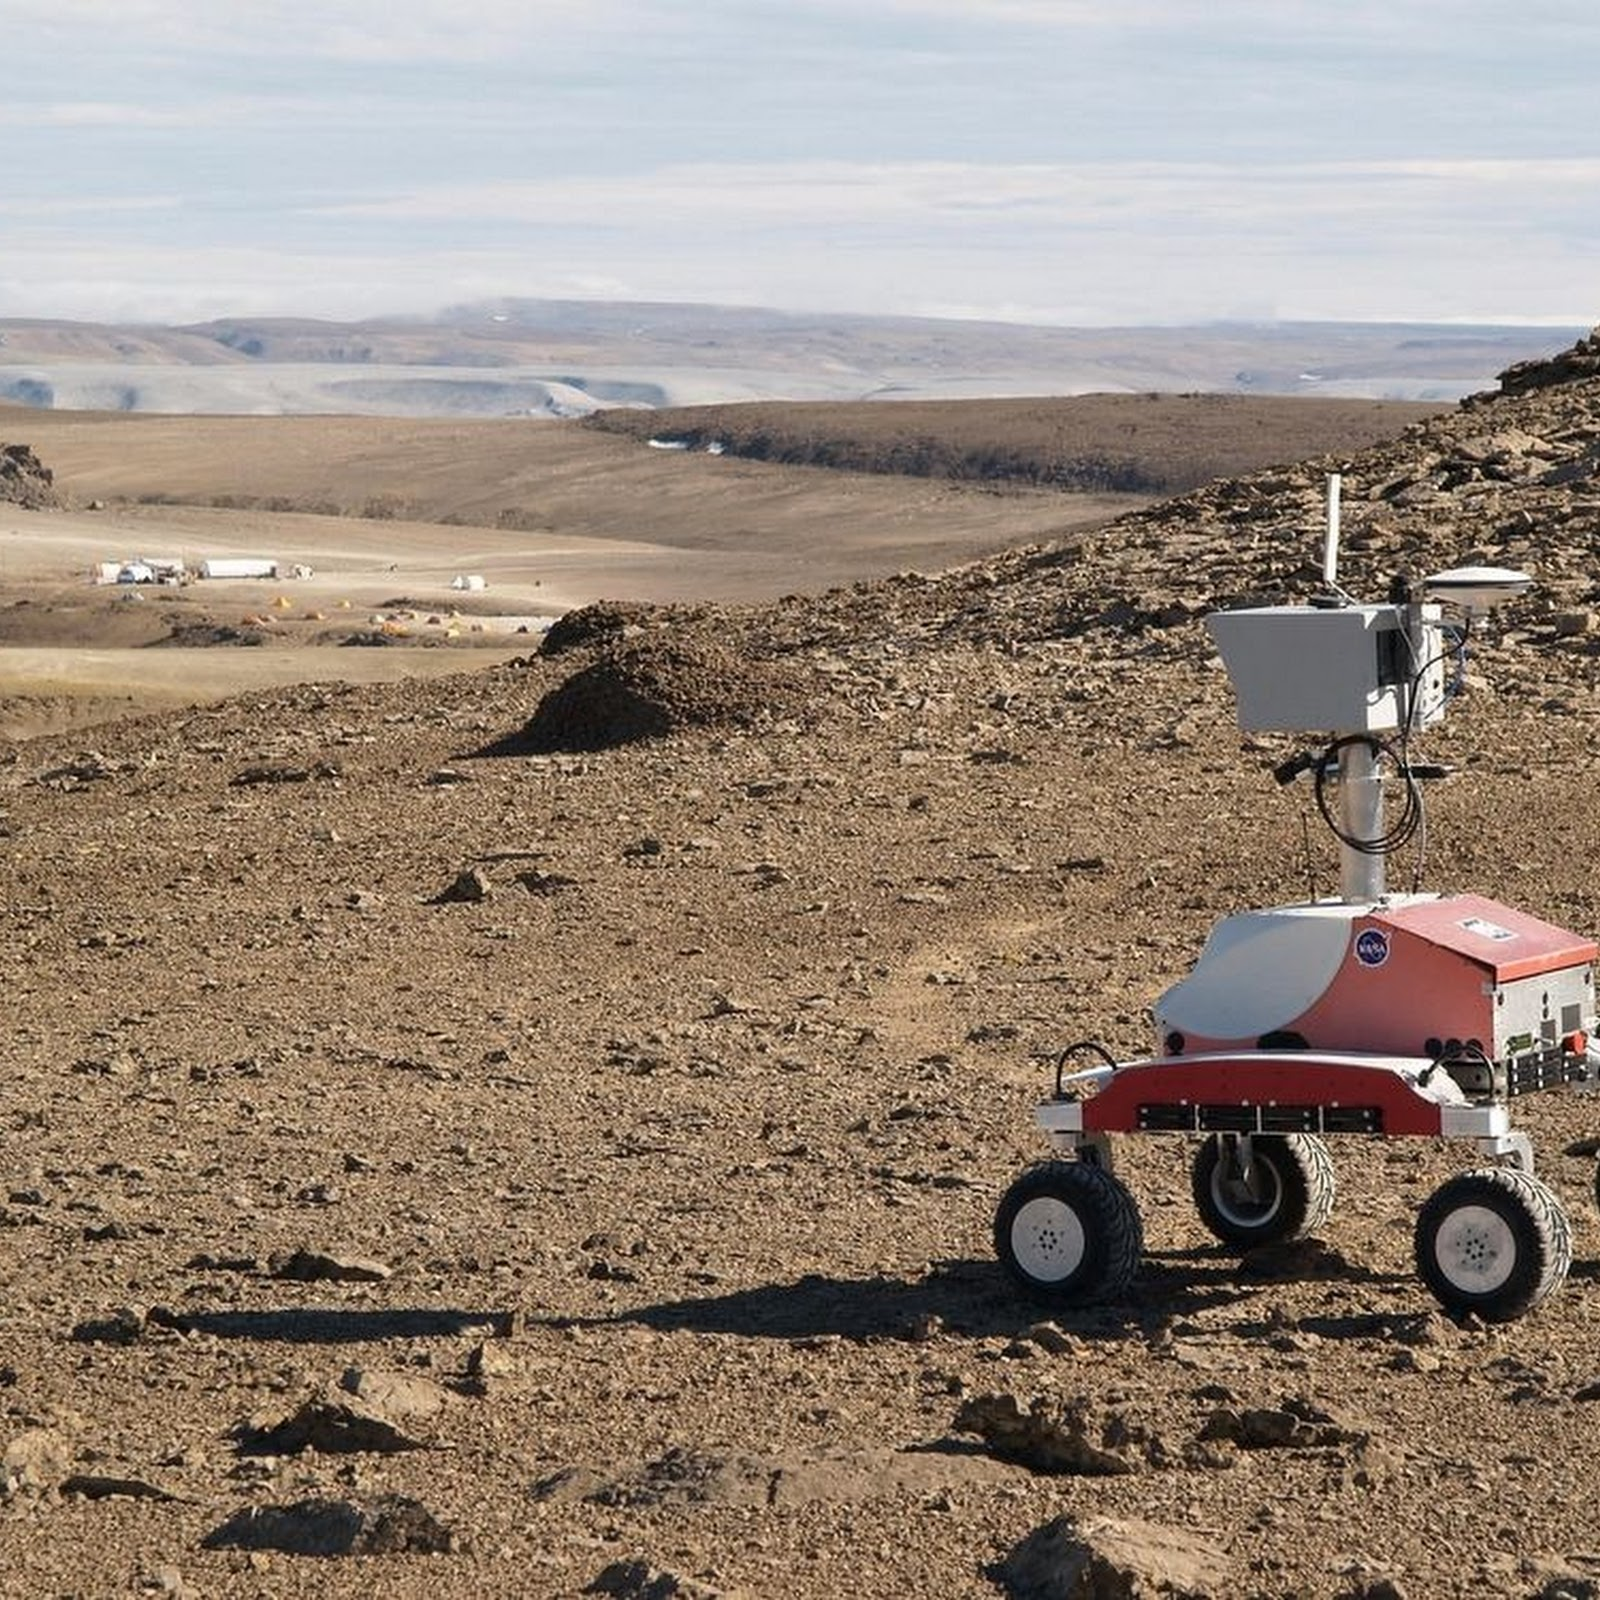 Devon Island: Mars on Earth